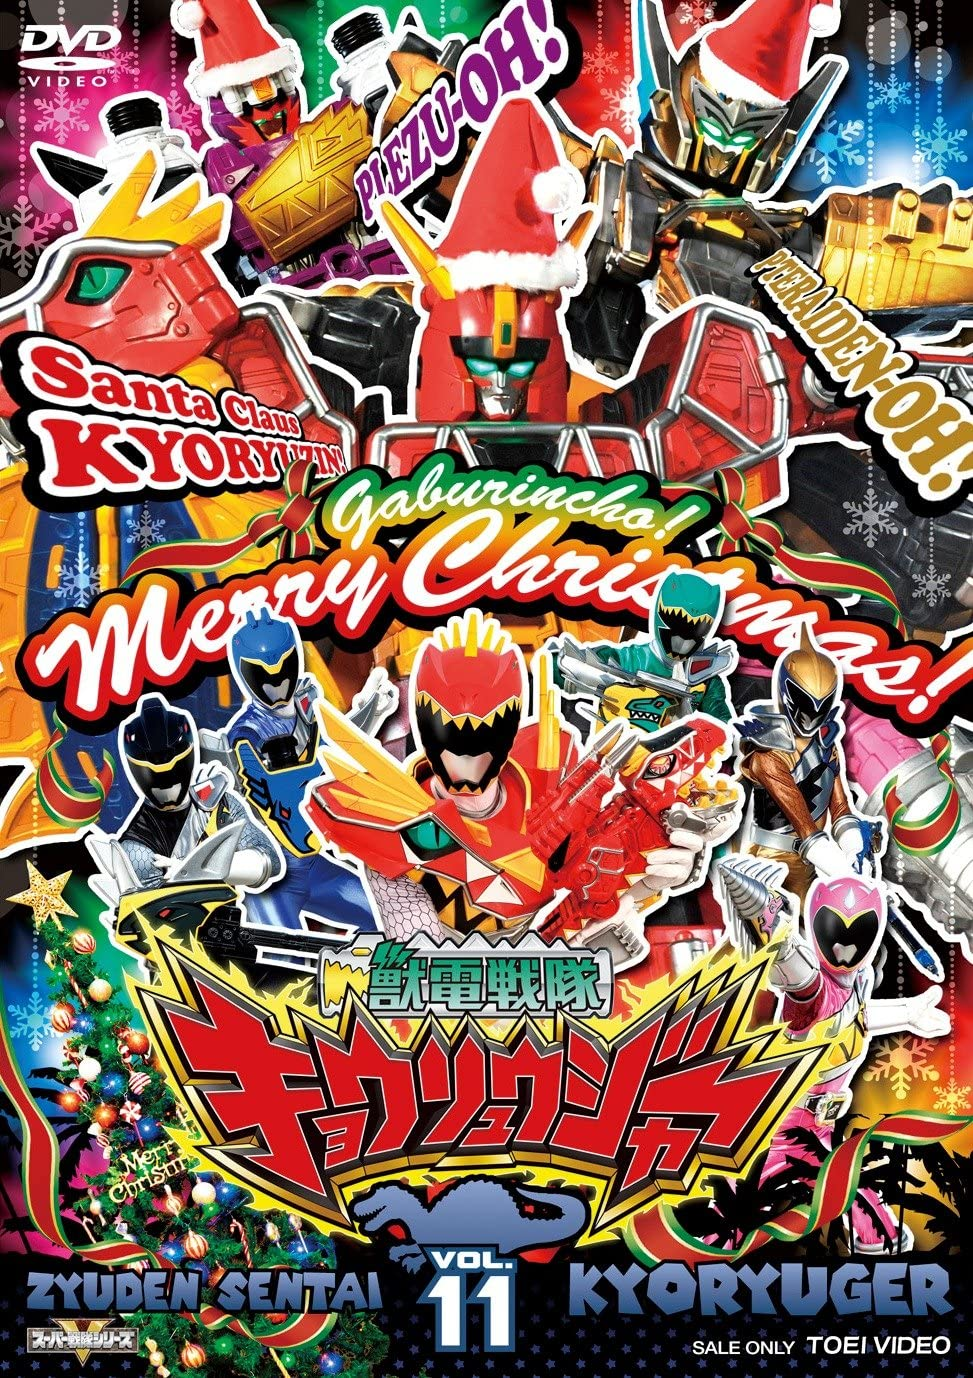 File:Kyoryuger DVD Vol 11.jpg